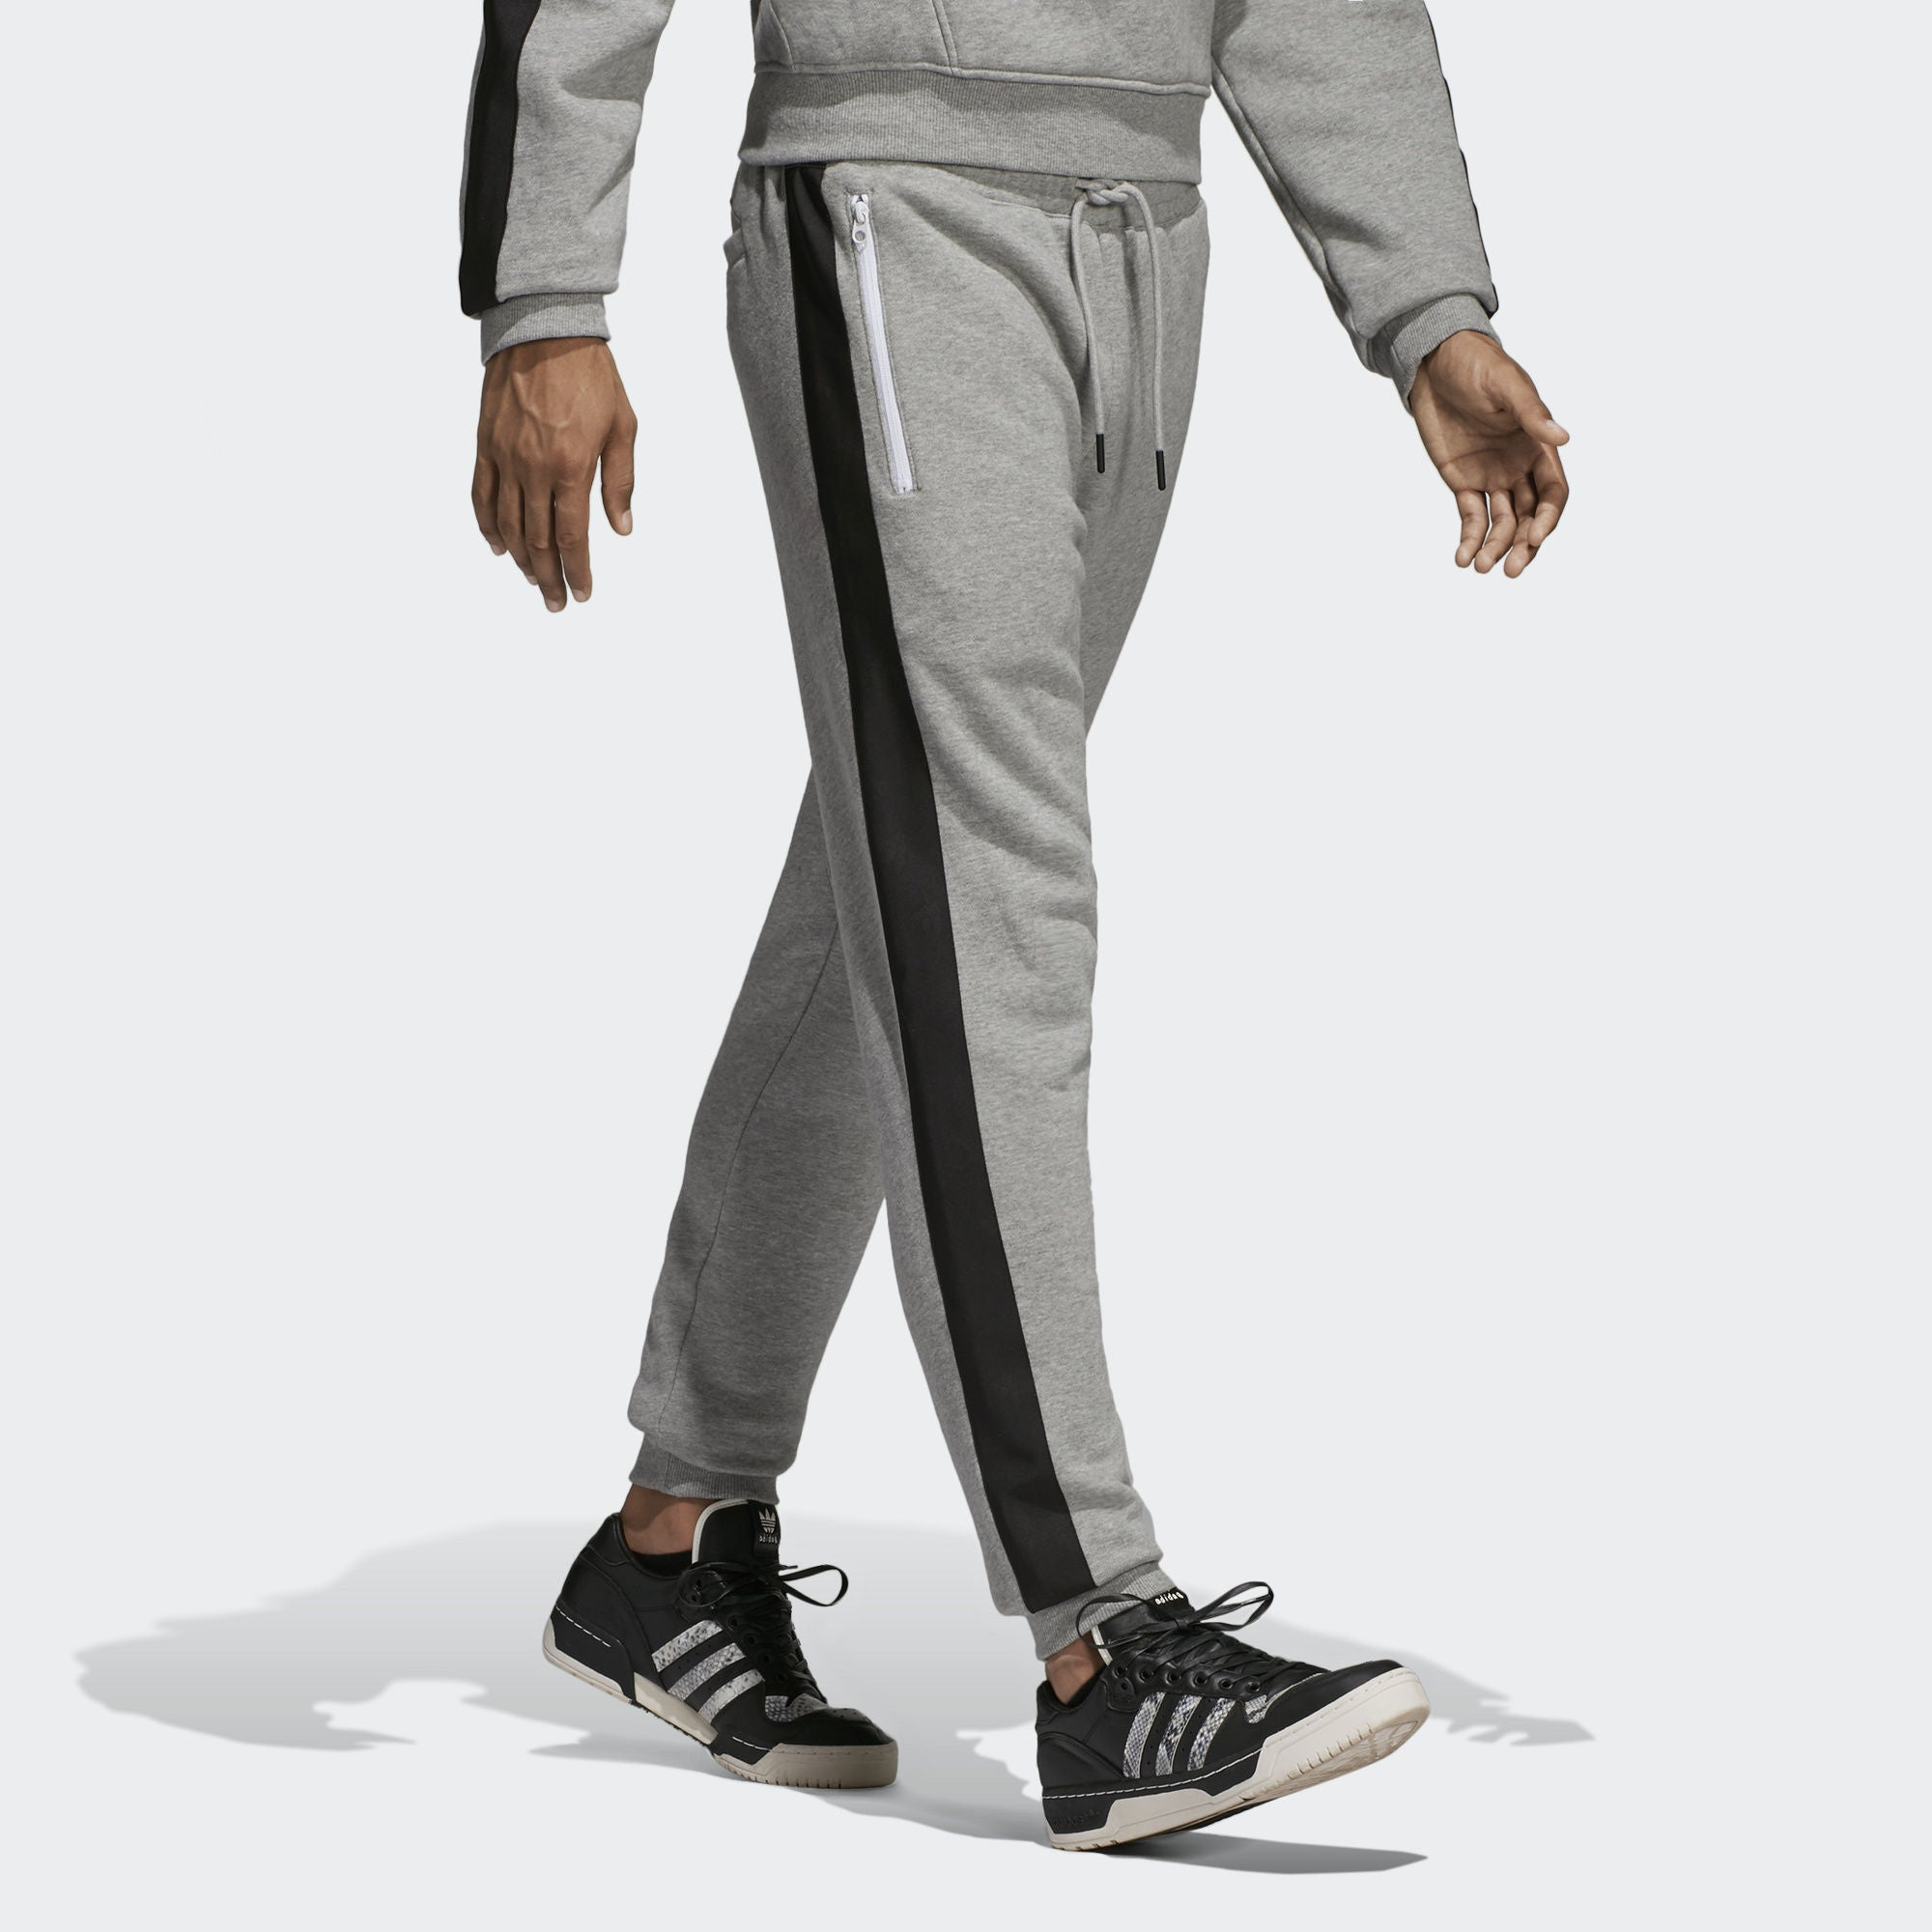 e08a1e2426260 UA   SONS SWEAT PANTS - GREY. ADIDAS